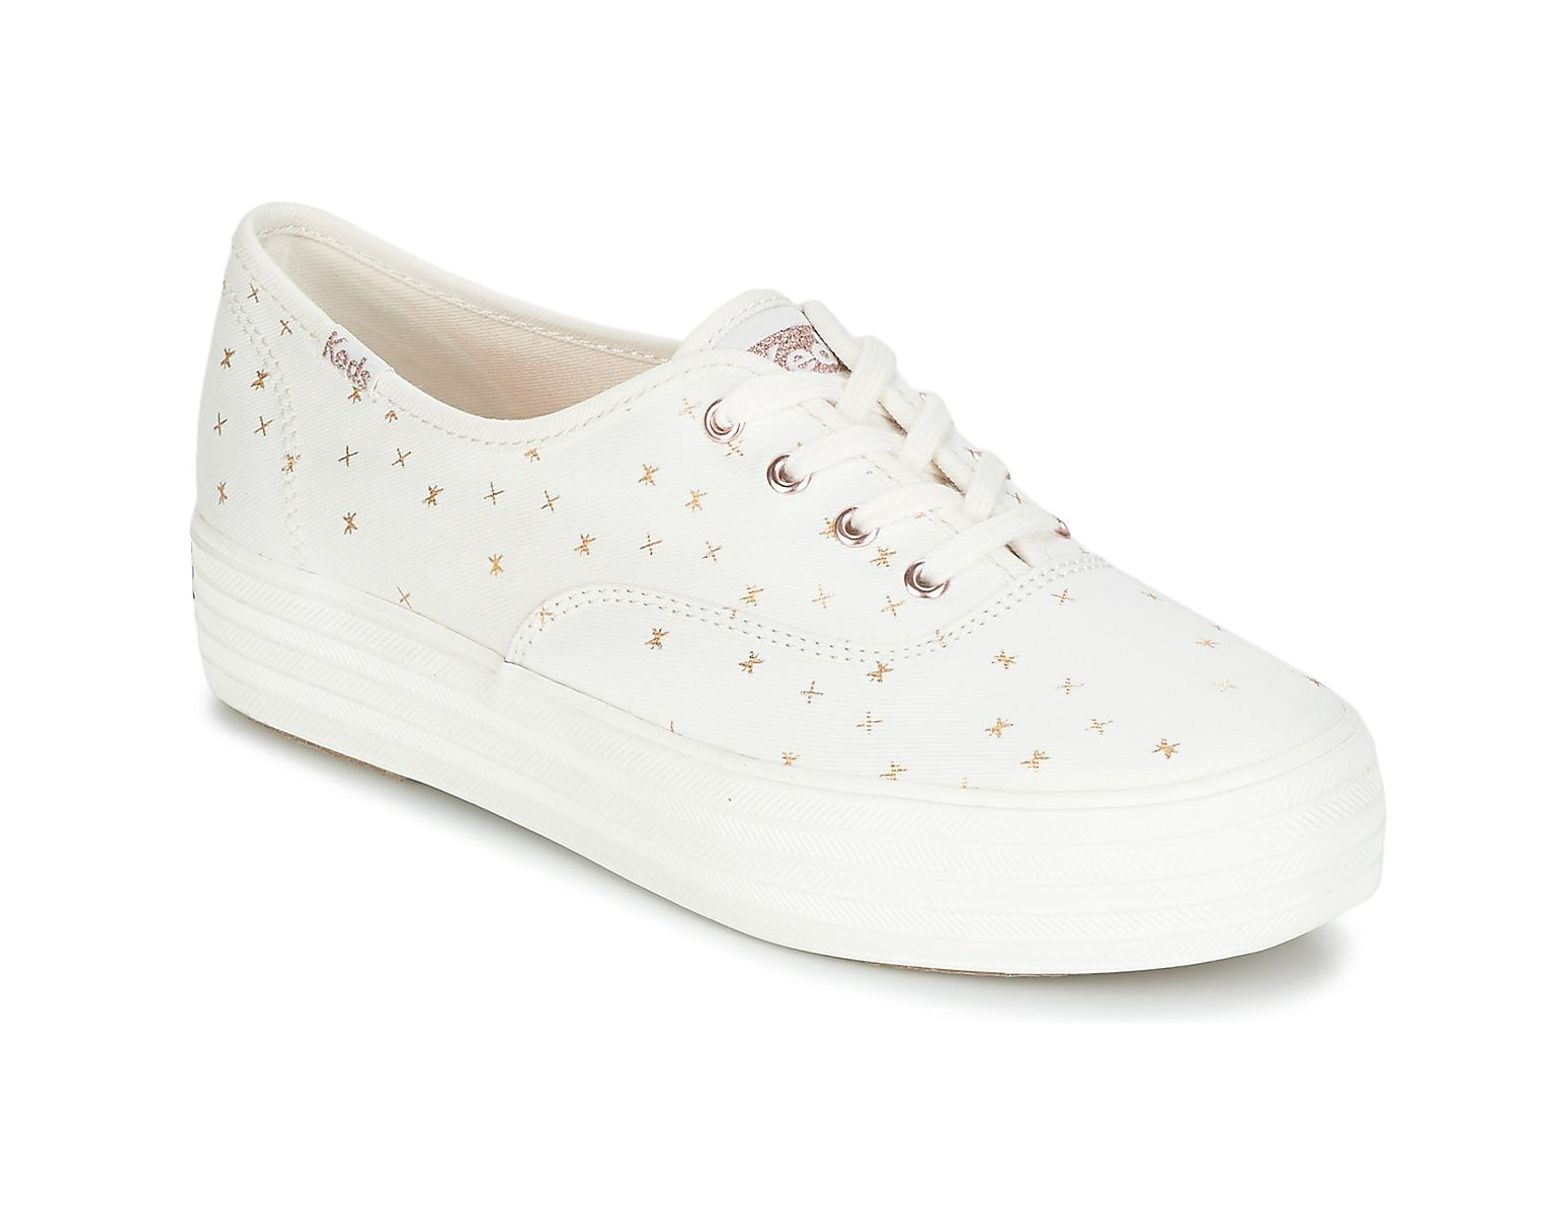 8f51530ea Keds Triple Ethereal Shoes (trainers) in White - Lyst